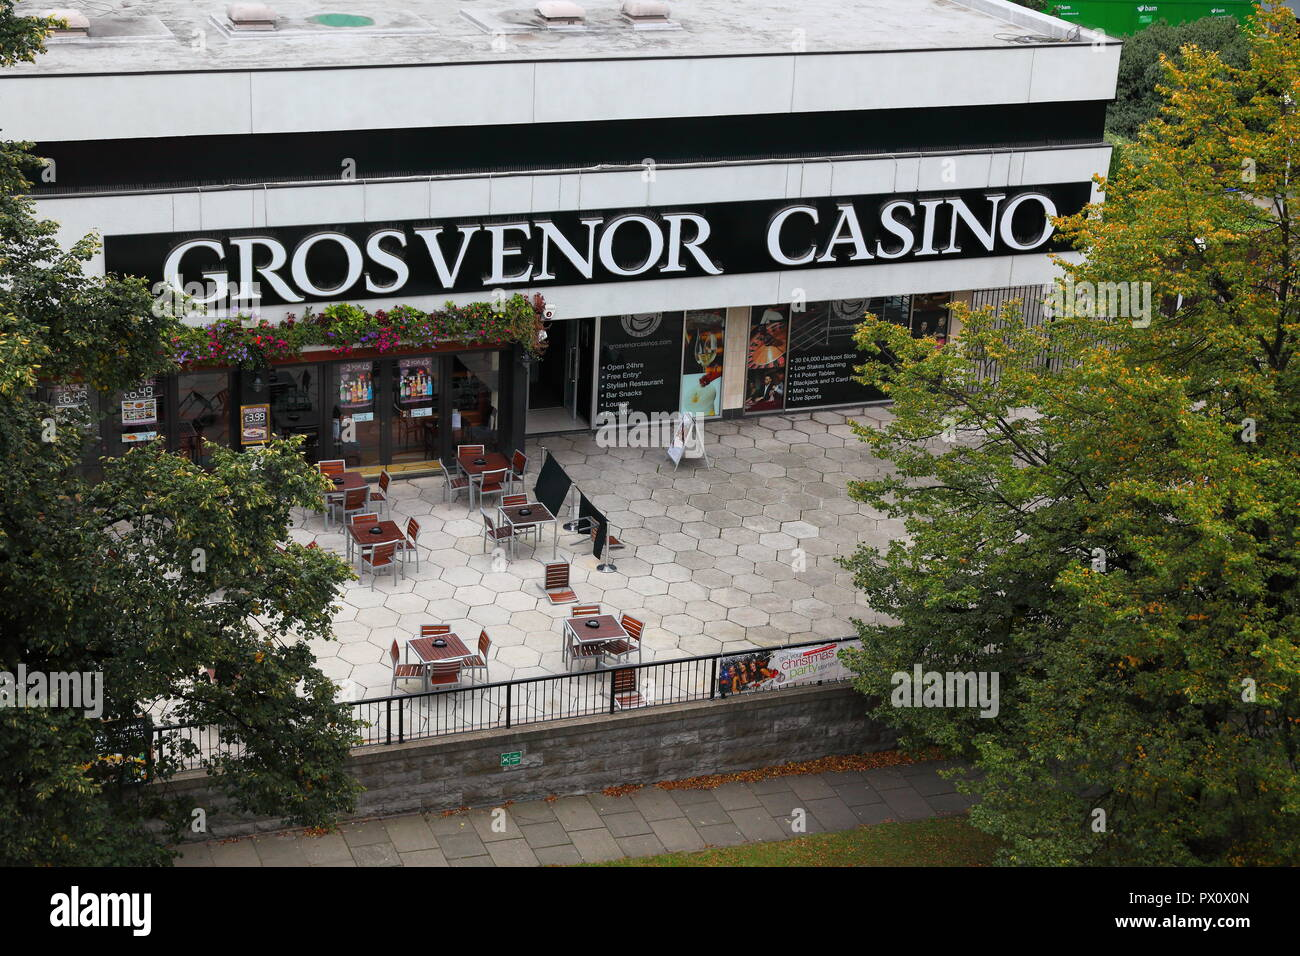 The Grosvenor Casino in Leeds, which has now been demolished to make way for new developments. - Stock Image